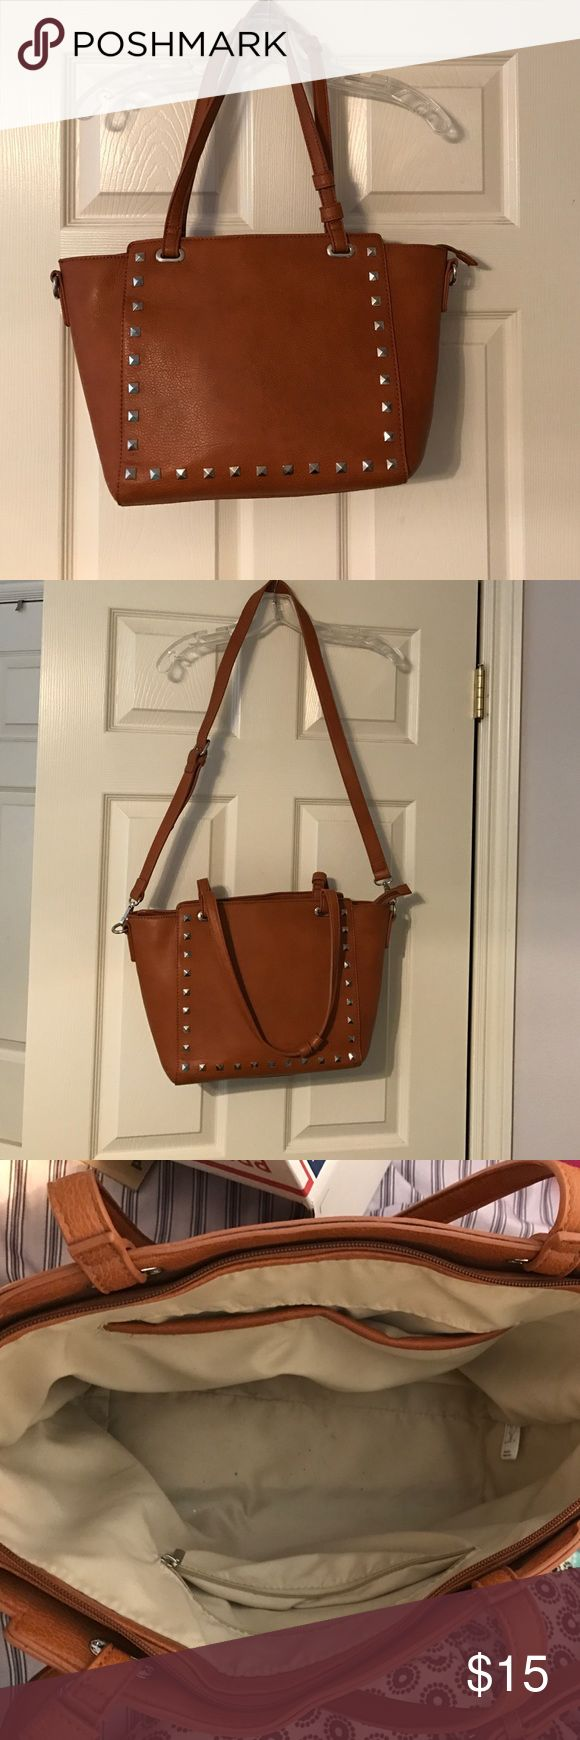 Nordstrom brown leather bag with studs From brass plum in Nordstrom. Brown/camel color leather. Silver studs. Has a cross body attachable strap. Has a zipper pocket as well as two open pockets. Zips up at the top. There is a small black dot stain on the back of the purse! Lightly used. Other than the spots it's in perfect condition. Price negotiable😘😍 bp Bags Crossbody Bags